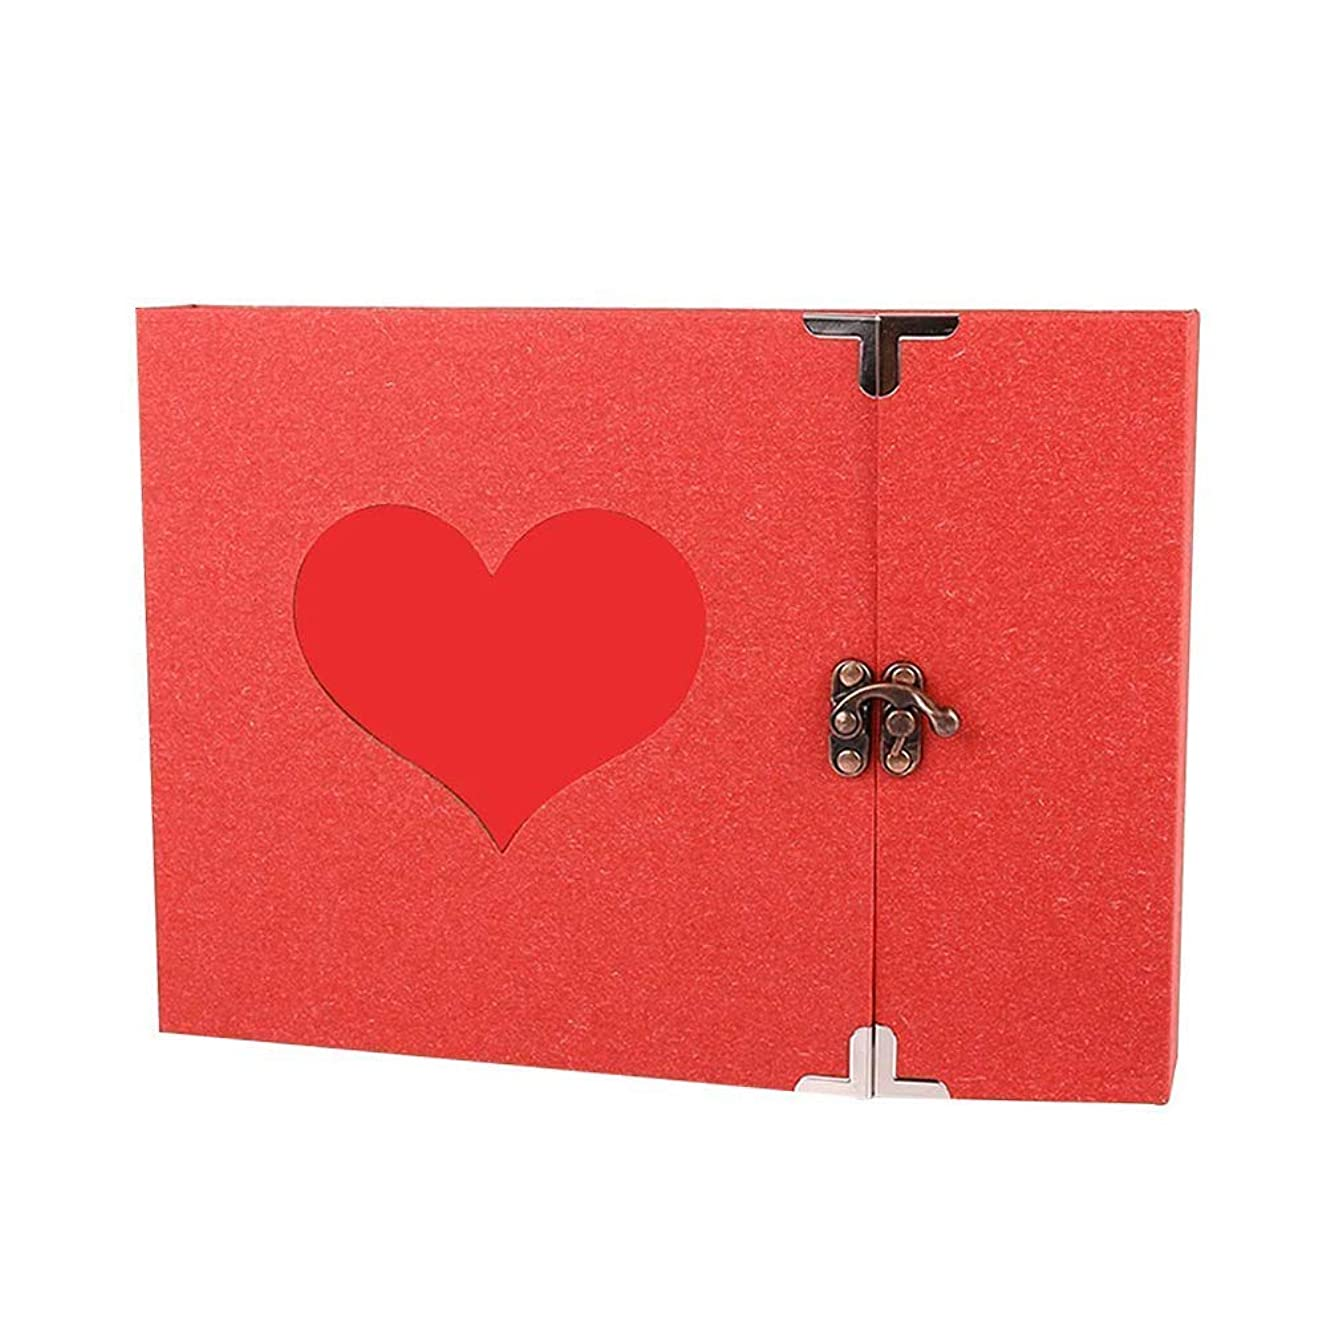 Longpro Vintage Heart Photo Album with Lock, 50 Pages Hand Made DIY Scrapbook Memory Book, Anniversary Photo Album, Wedding Record Album, Guestbook (Pure Red Heart)